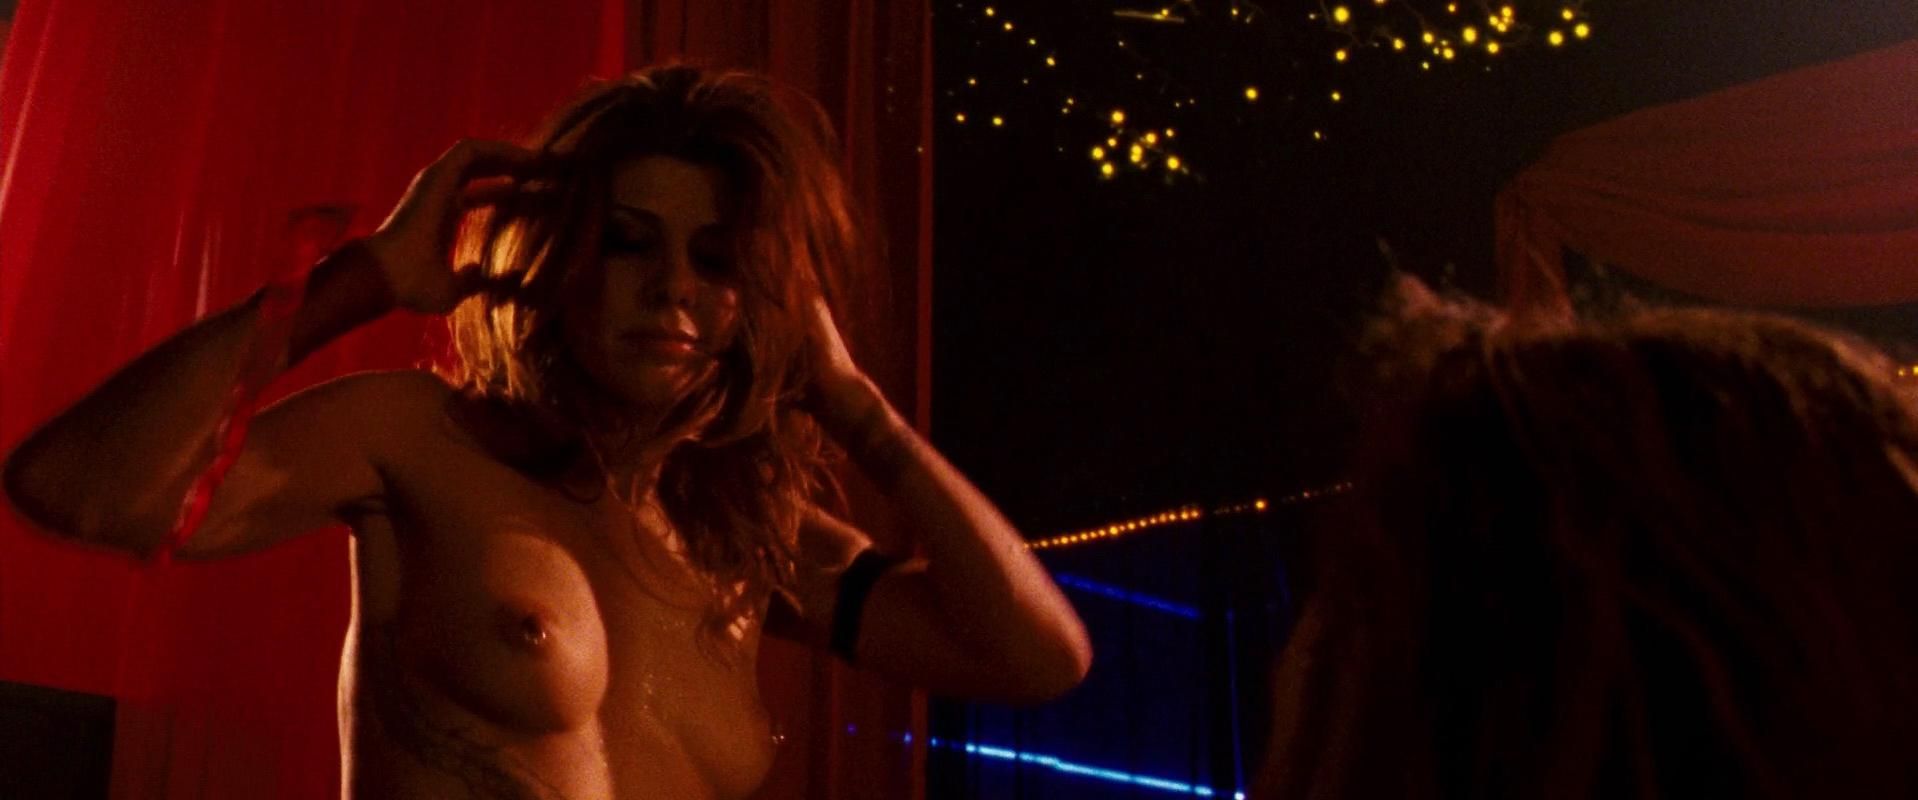 Marisa Tomei nude - The Wrestler (2008)